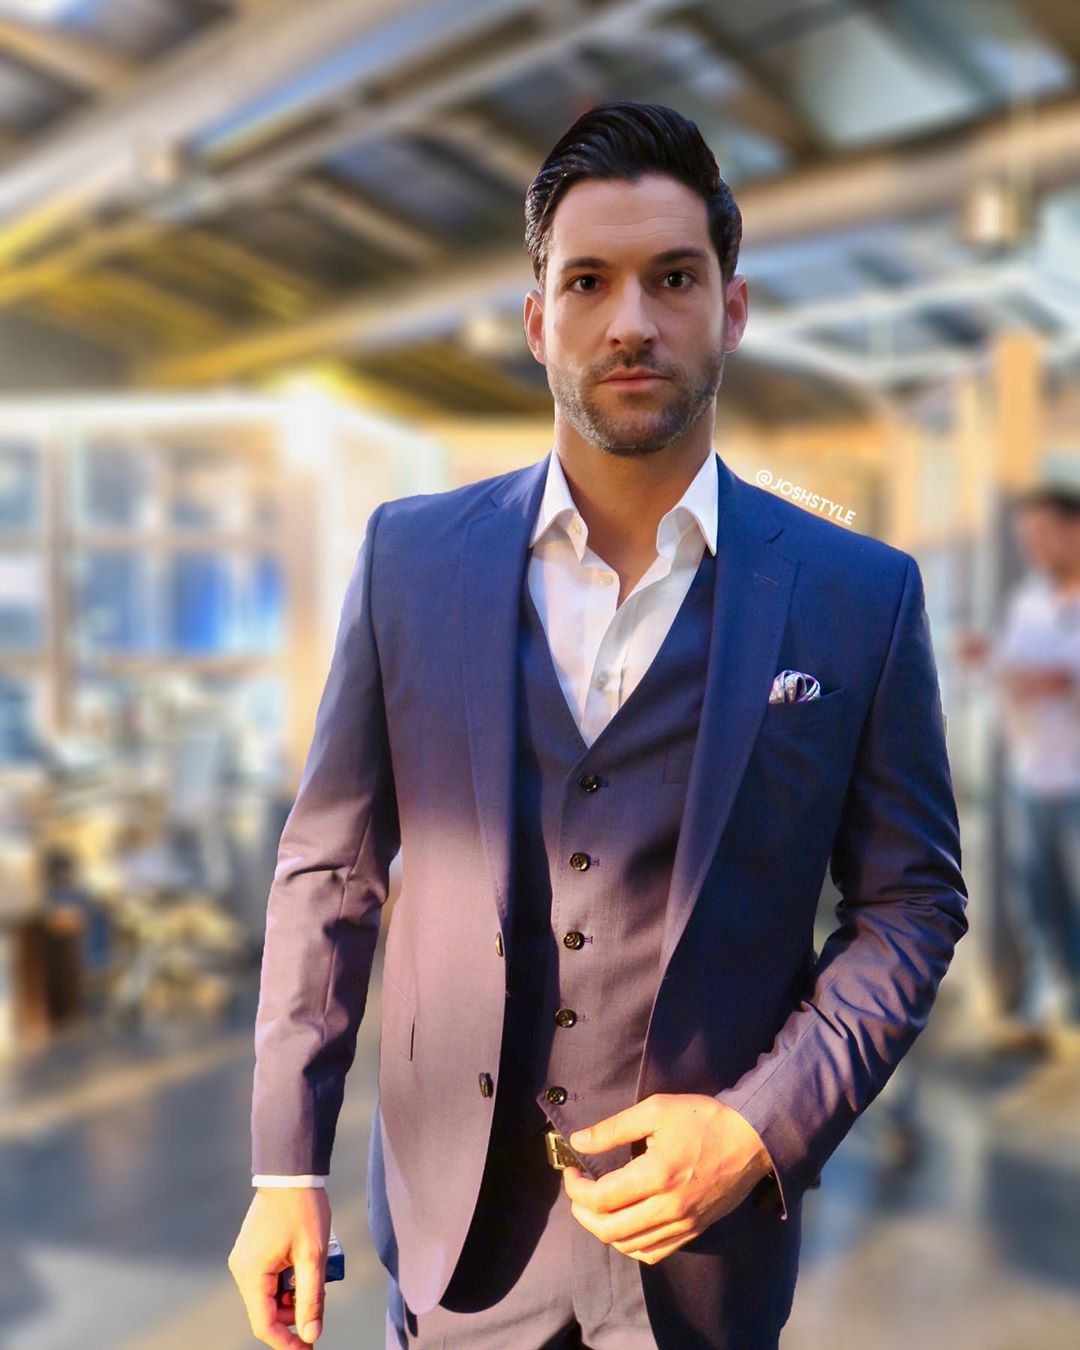 New Tom Ellis Bts Pictures And Videos Lucifer Season 4: New Tom Ellis Picture – BTS Lucifer Season 4